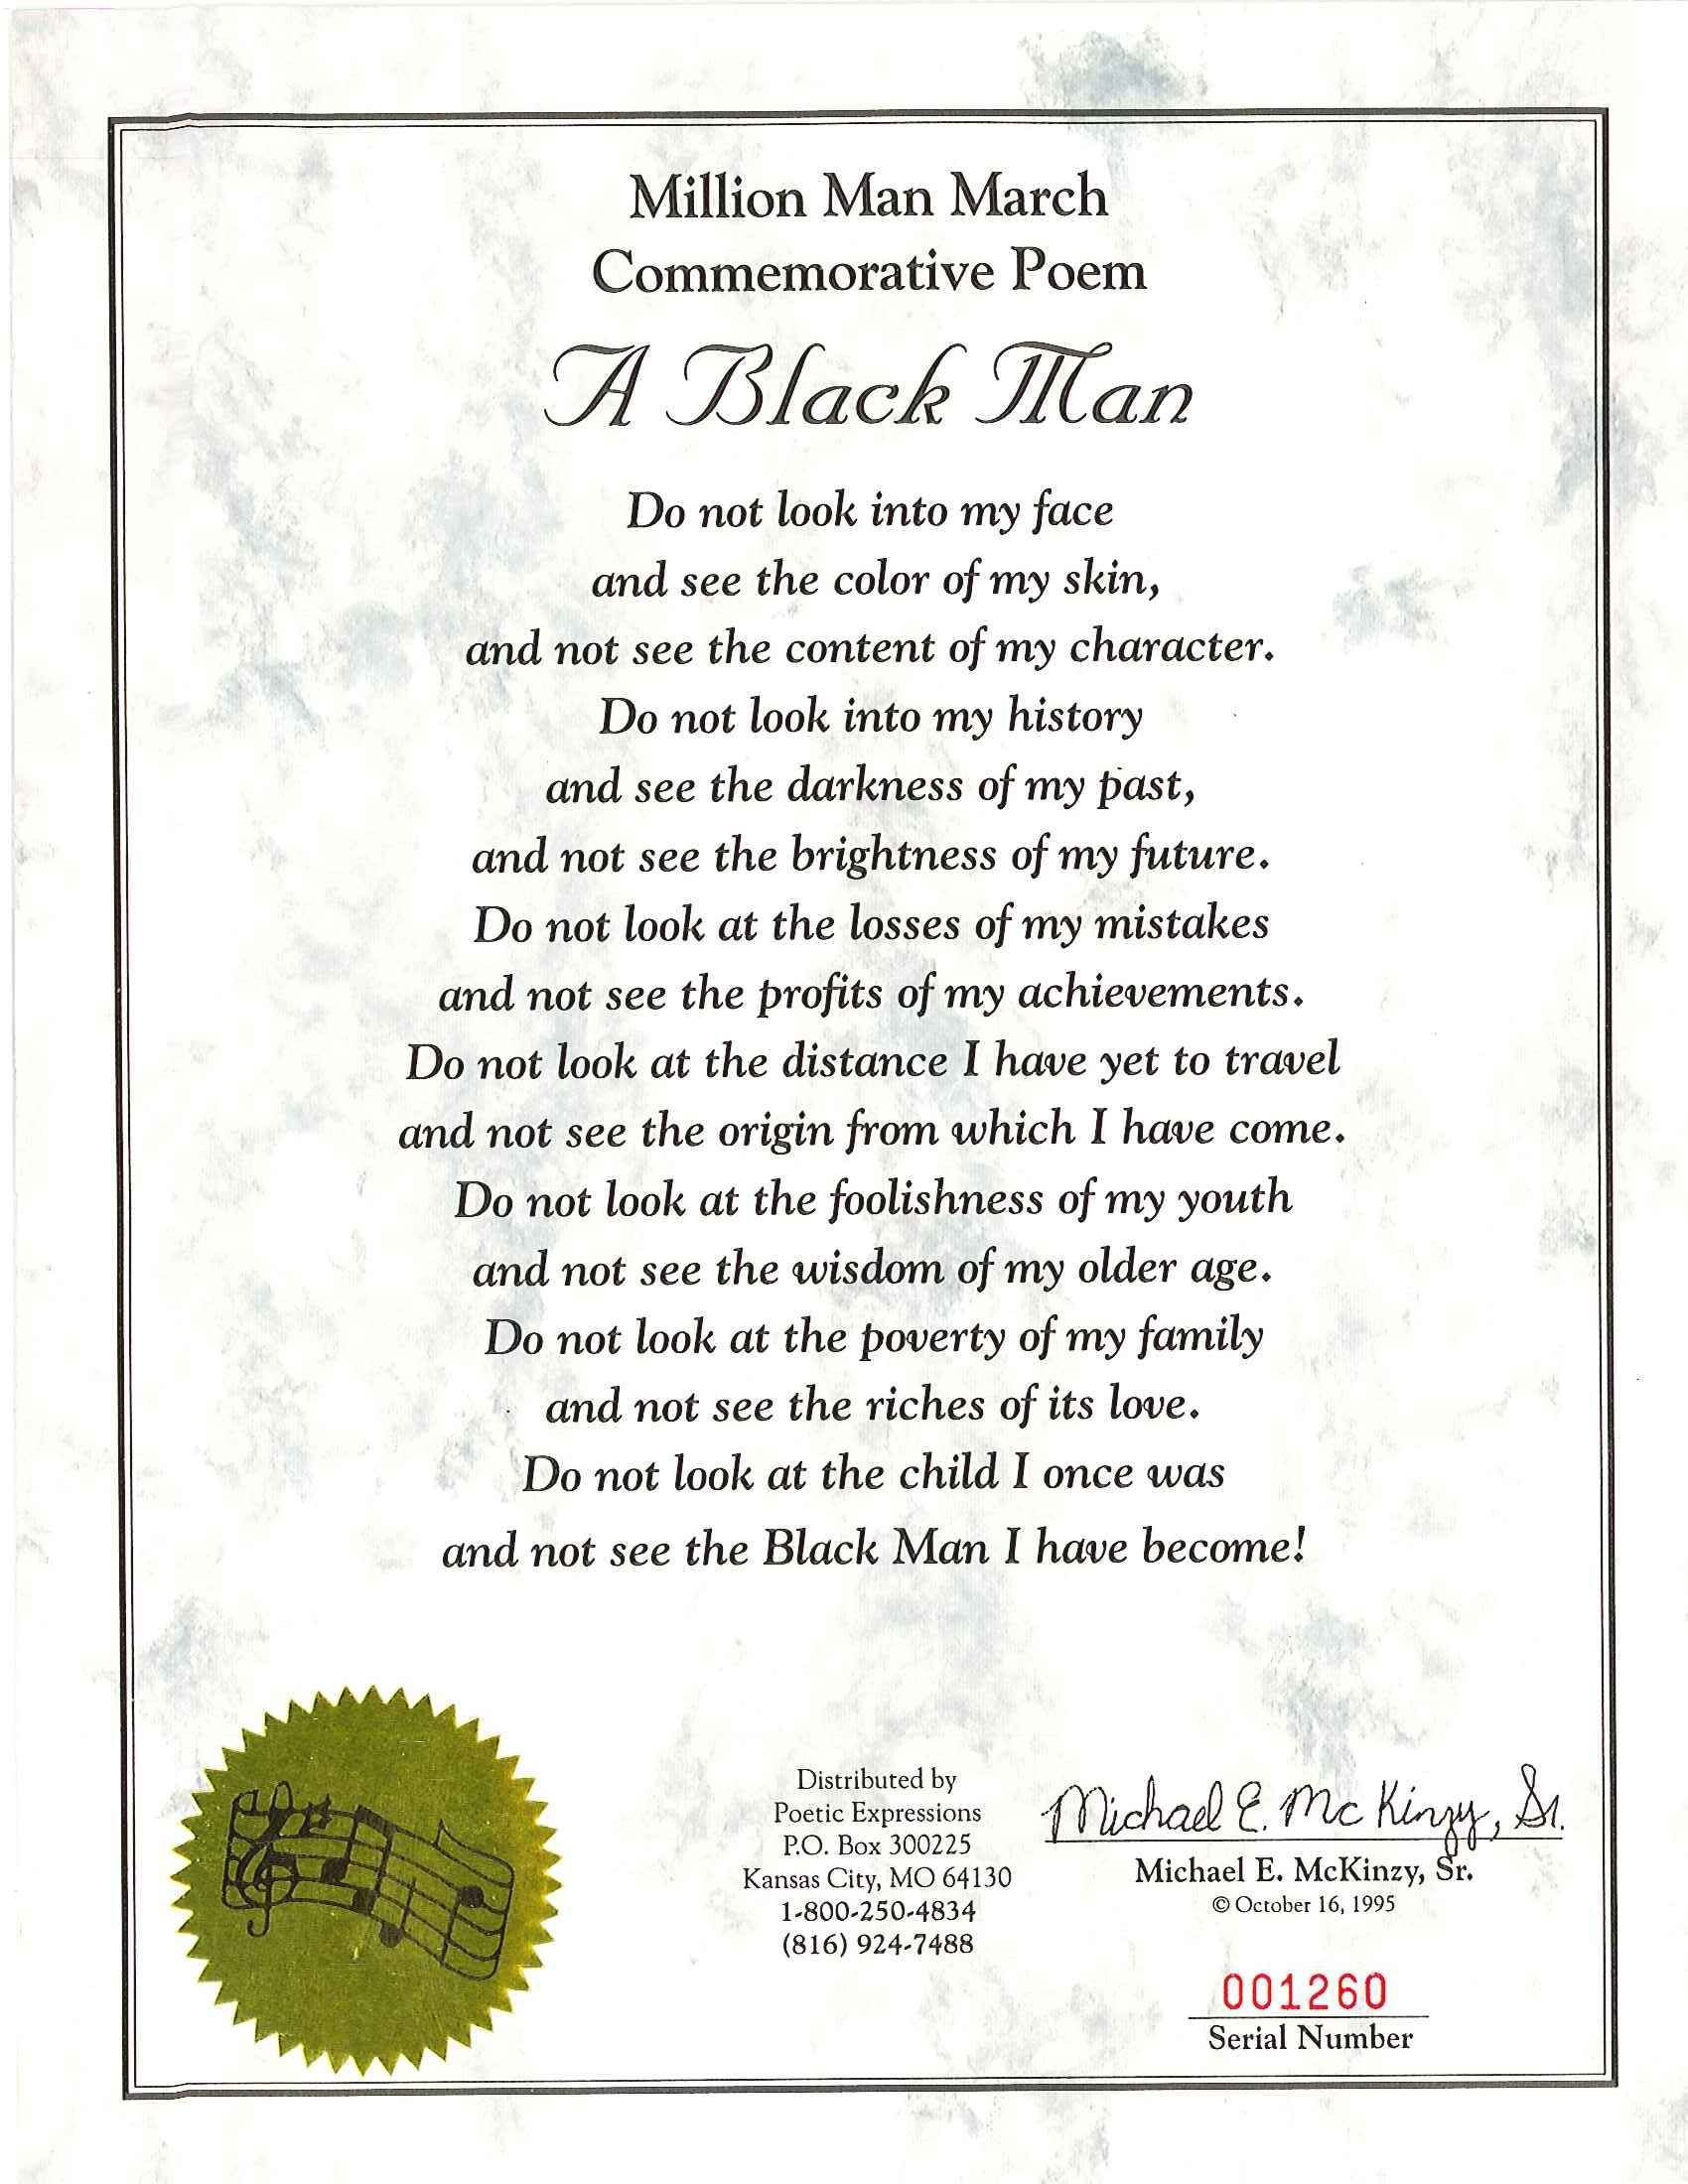 Bkack Man Did It Poem  Google Search  Black History  Black  Bkack Man Did It Poem  Google Search Black History Poems History Images  Black Examples Of Argumentative Thesis Statements For Essays also An Essay On English Language  Essay About Business